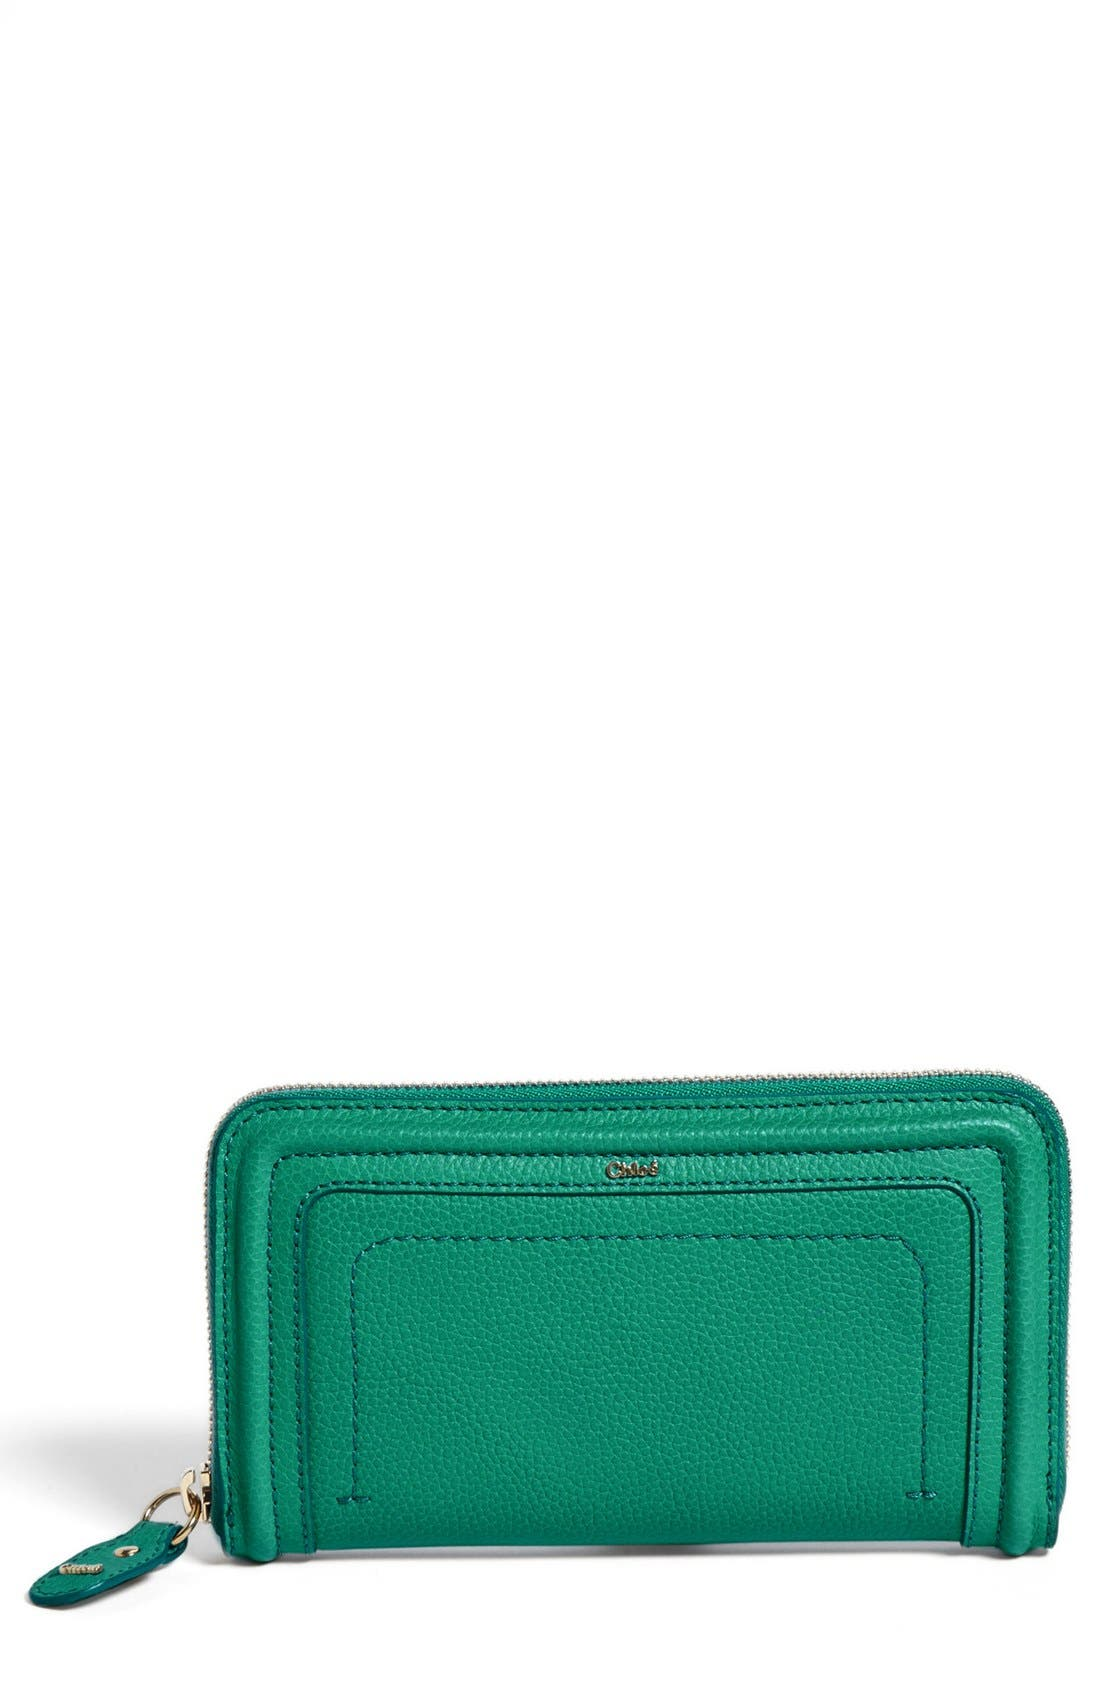 Main Image - Chloé 'Paraty' Zip Around Calfskin Leather Wallet